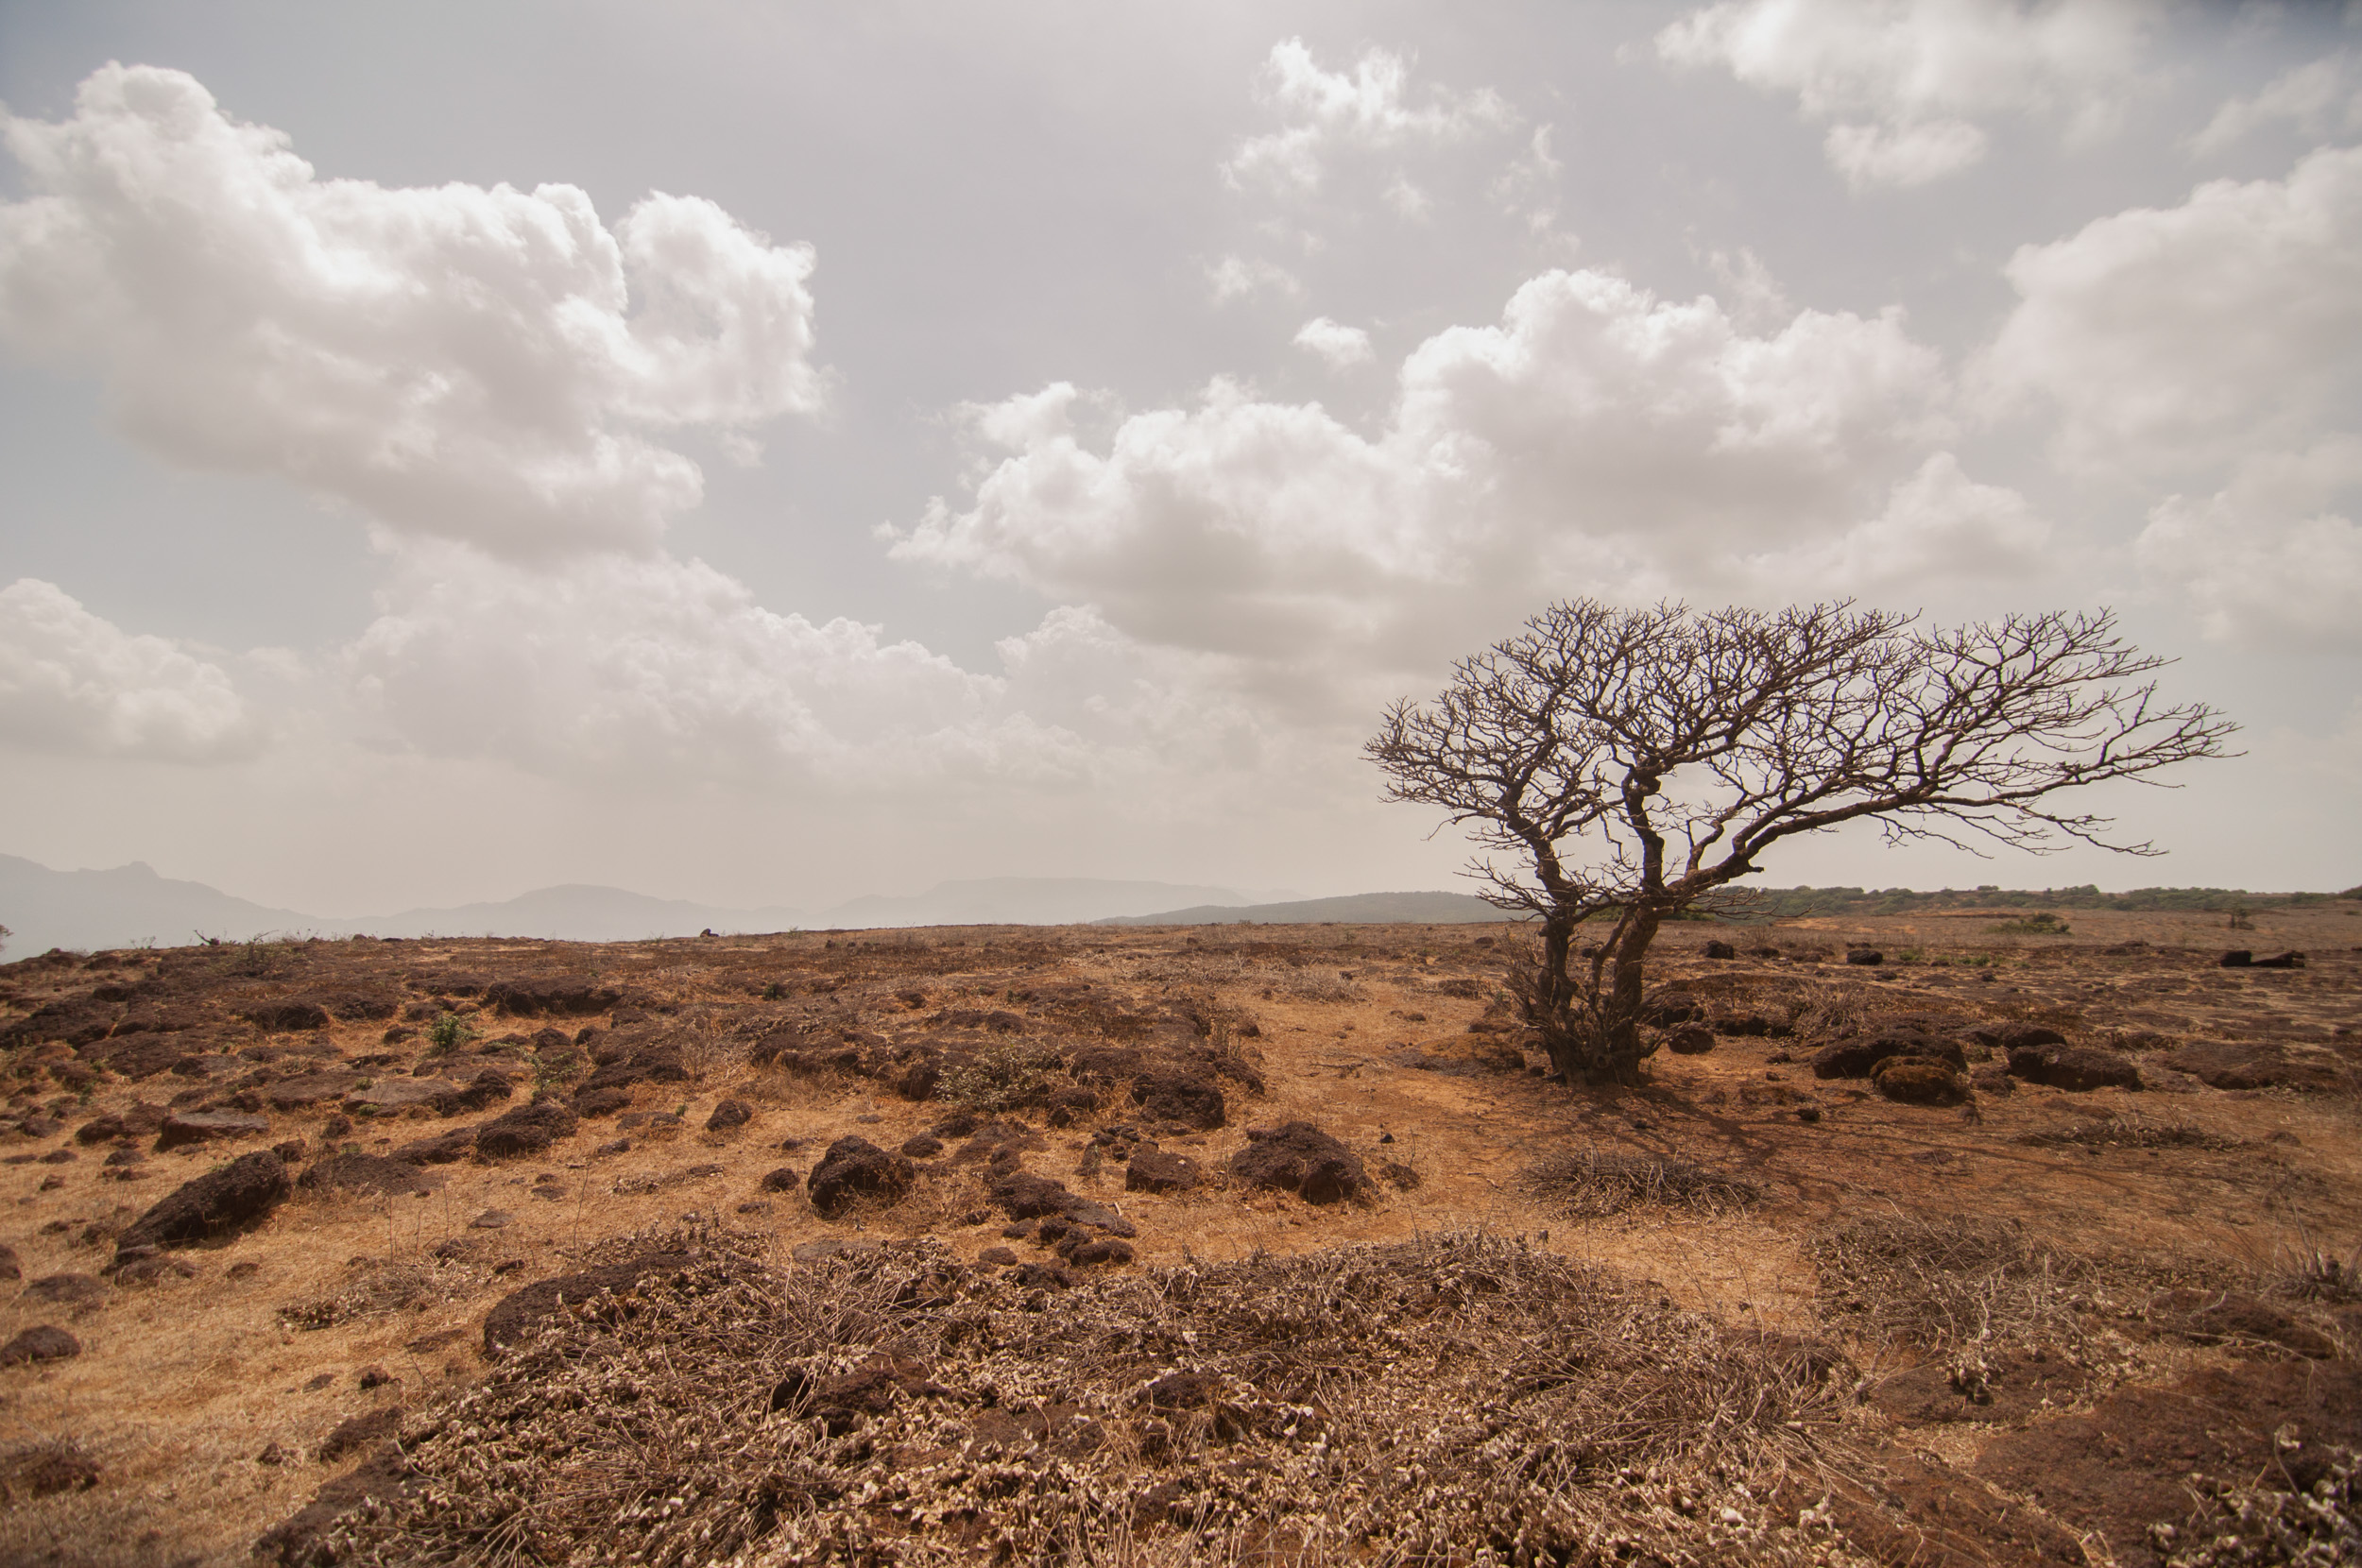 Although rich in geological history, the barren plateau-islands, burnt and desolate in the harsh May sun seem devoid of any signs of wildlife. Could anything survive here?